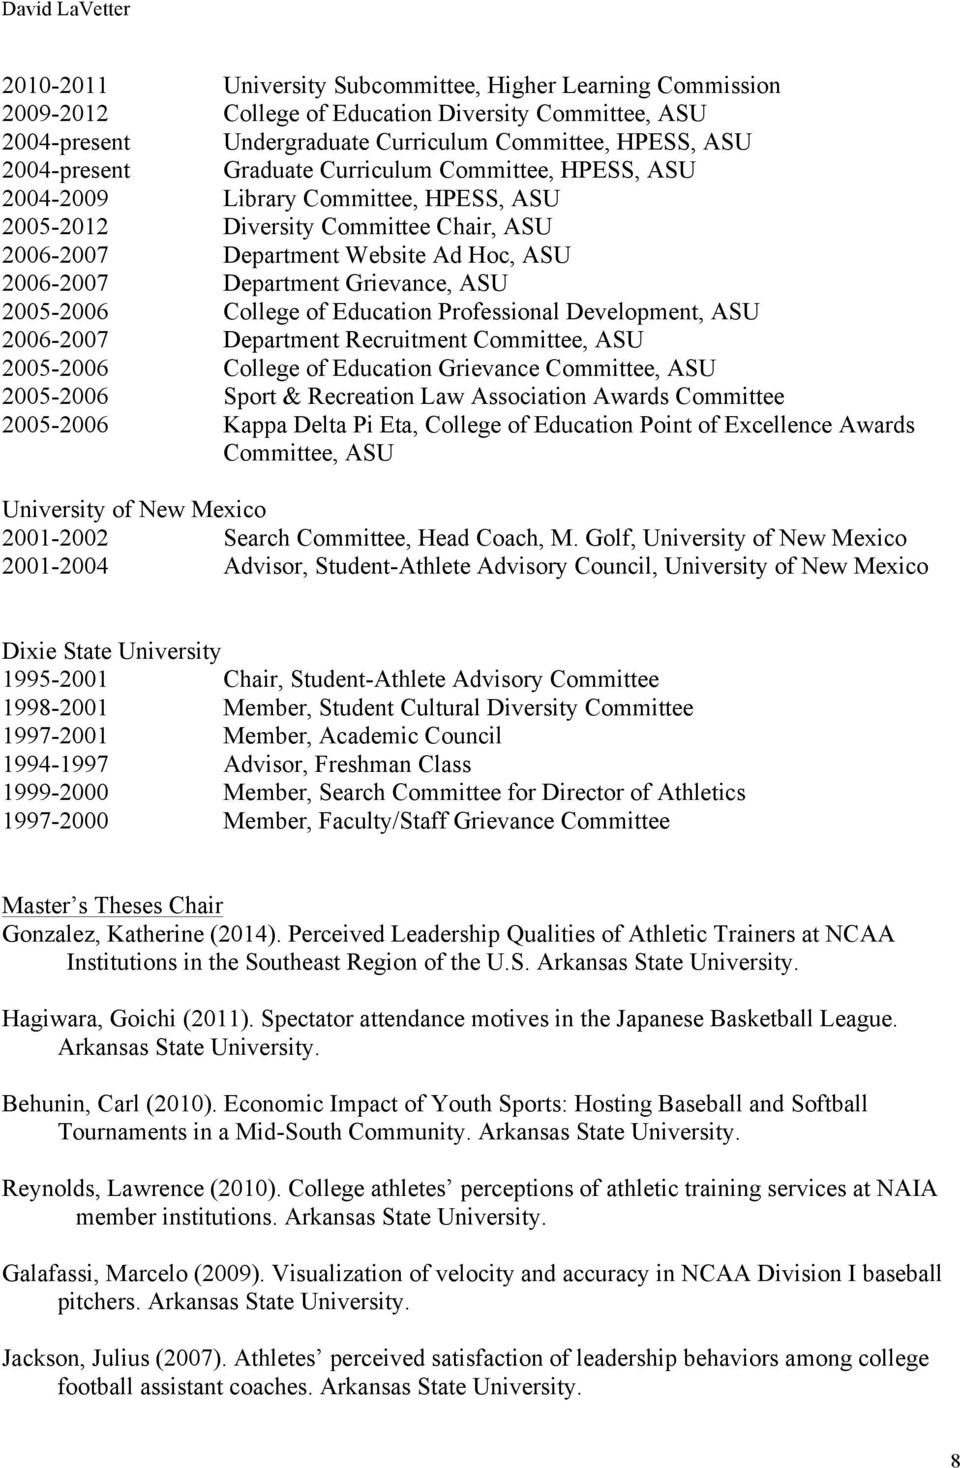 2005-2006 College of Education Professional Development, ASU 2006-2007 Department Recruitment Committee, ASU 2005-2006 College of Education Grievance Committee, ASU 2005-2006 Sport & Recreation Law